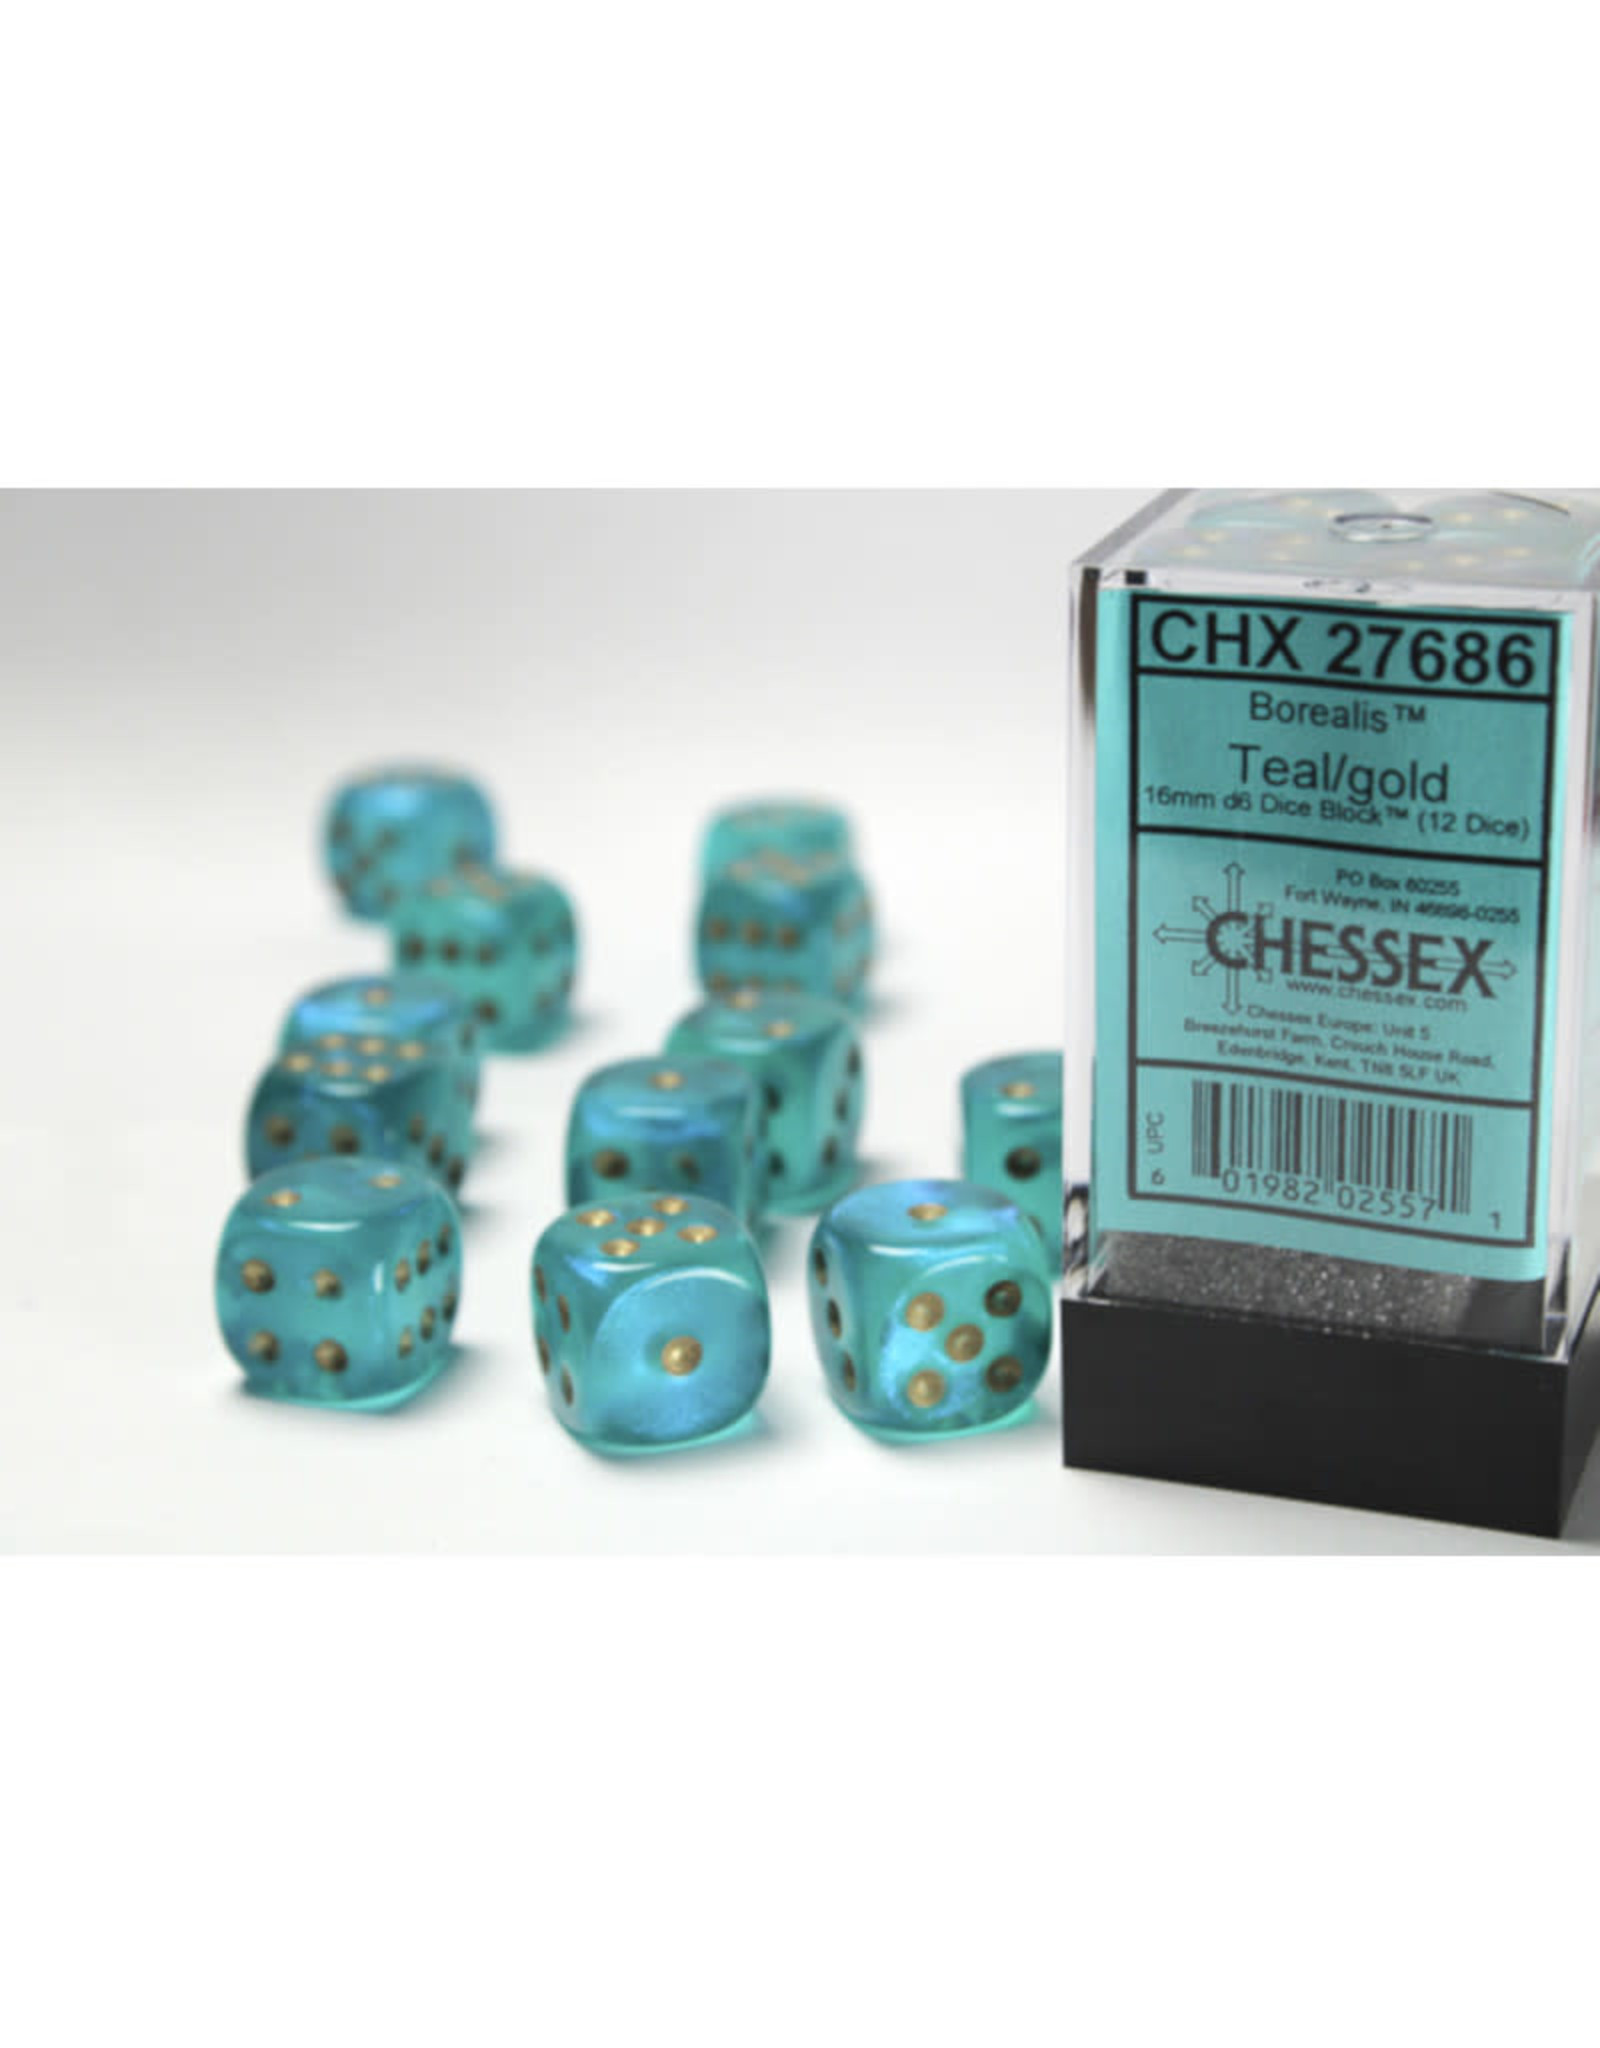 Chessex D6 Dice: 16mm Borealis Teal/Gold (12)